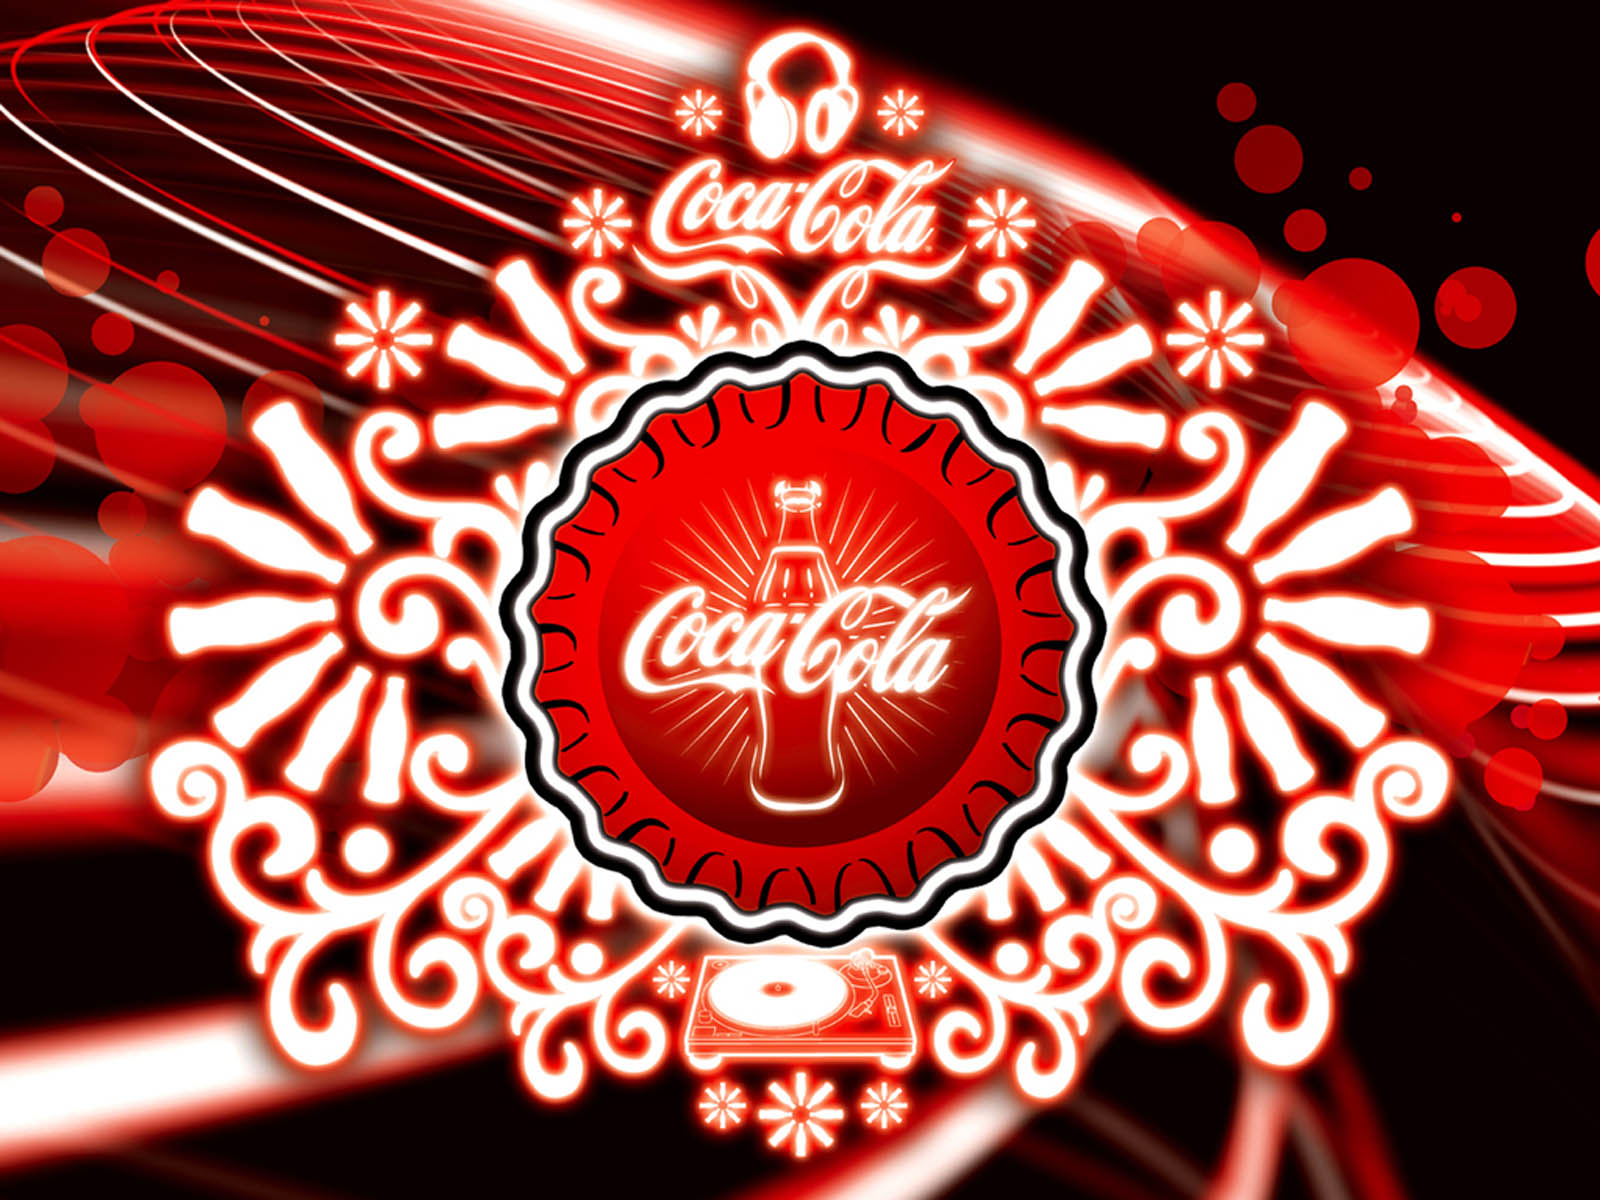 coca cola wallpapers hd hd wallpapers backgrounds